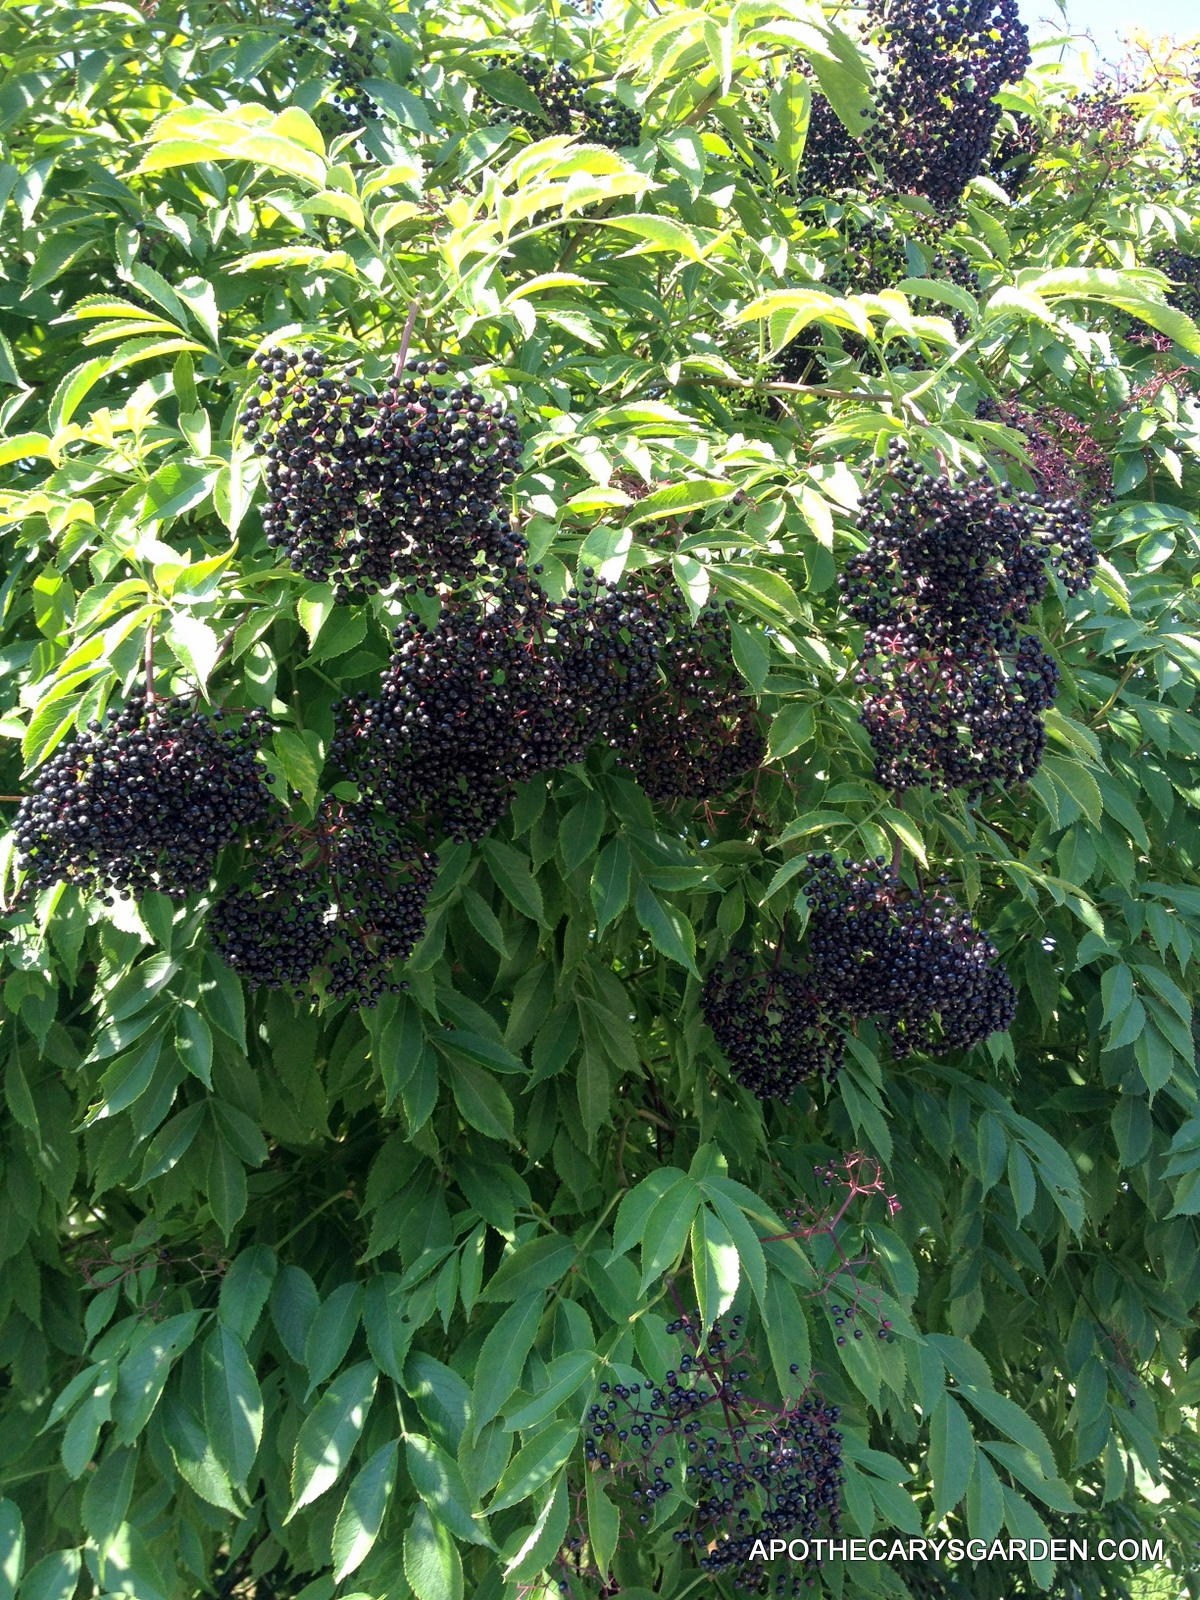 Eldeberry Wine-Perfectly ripe Elderberries-Apothecary's Garden 2013